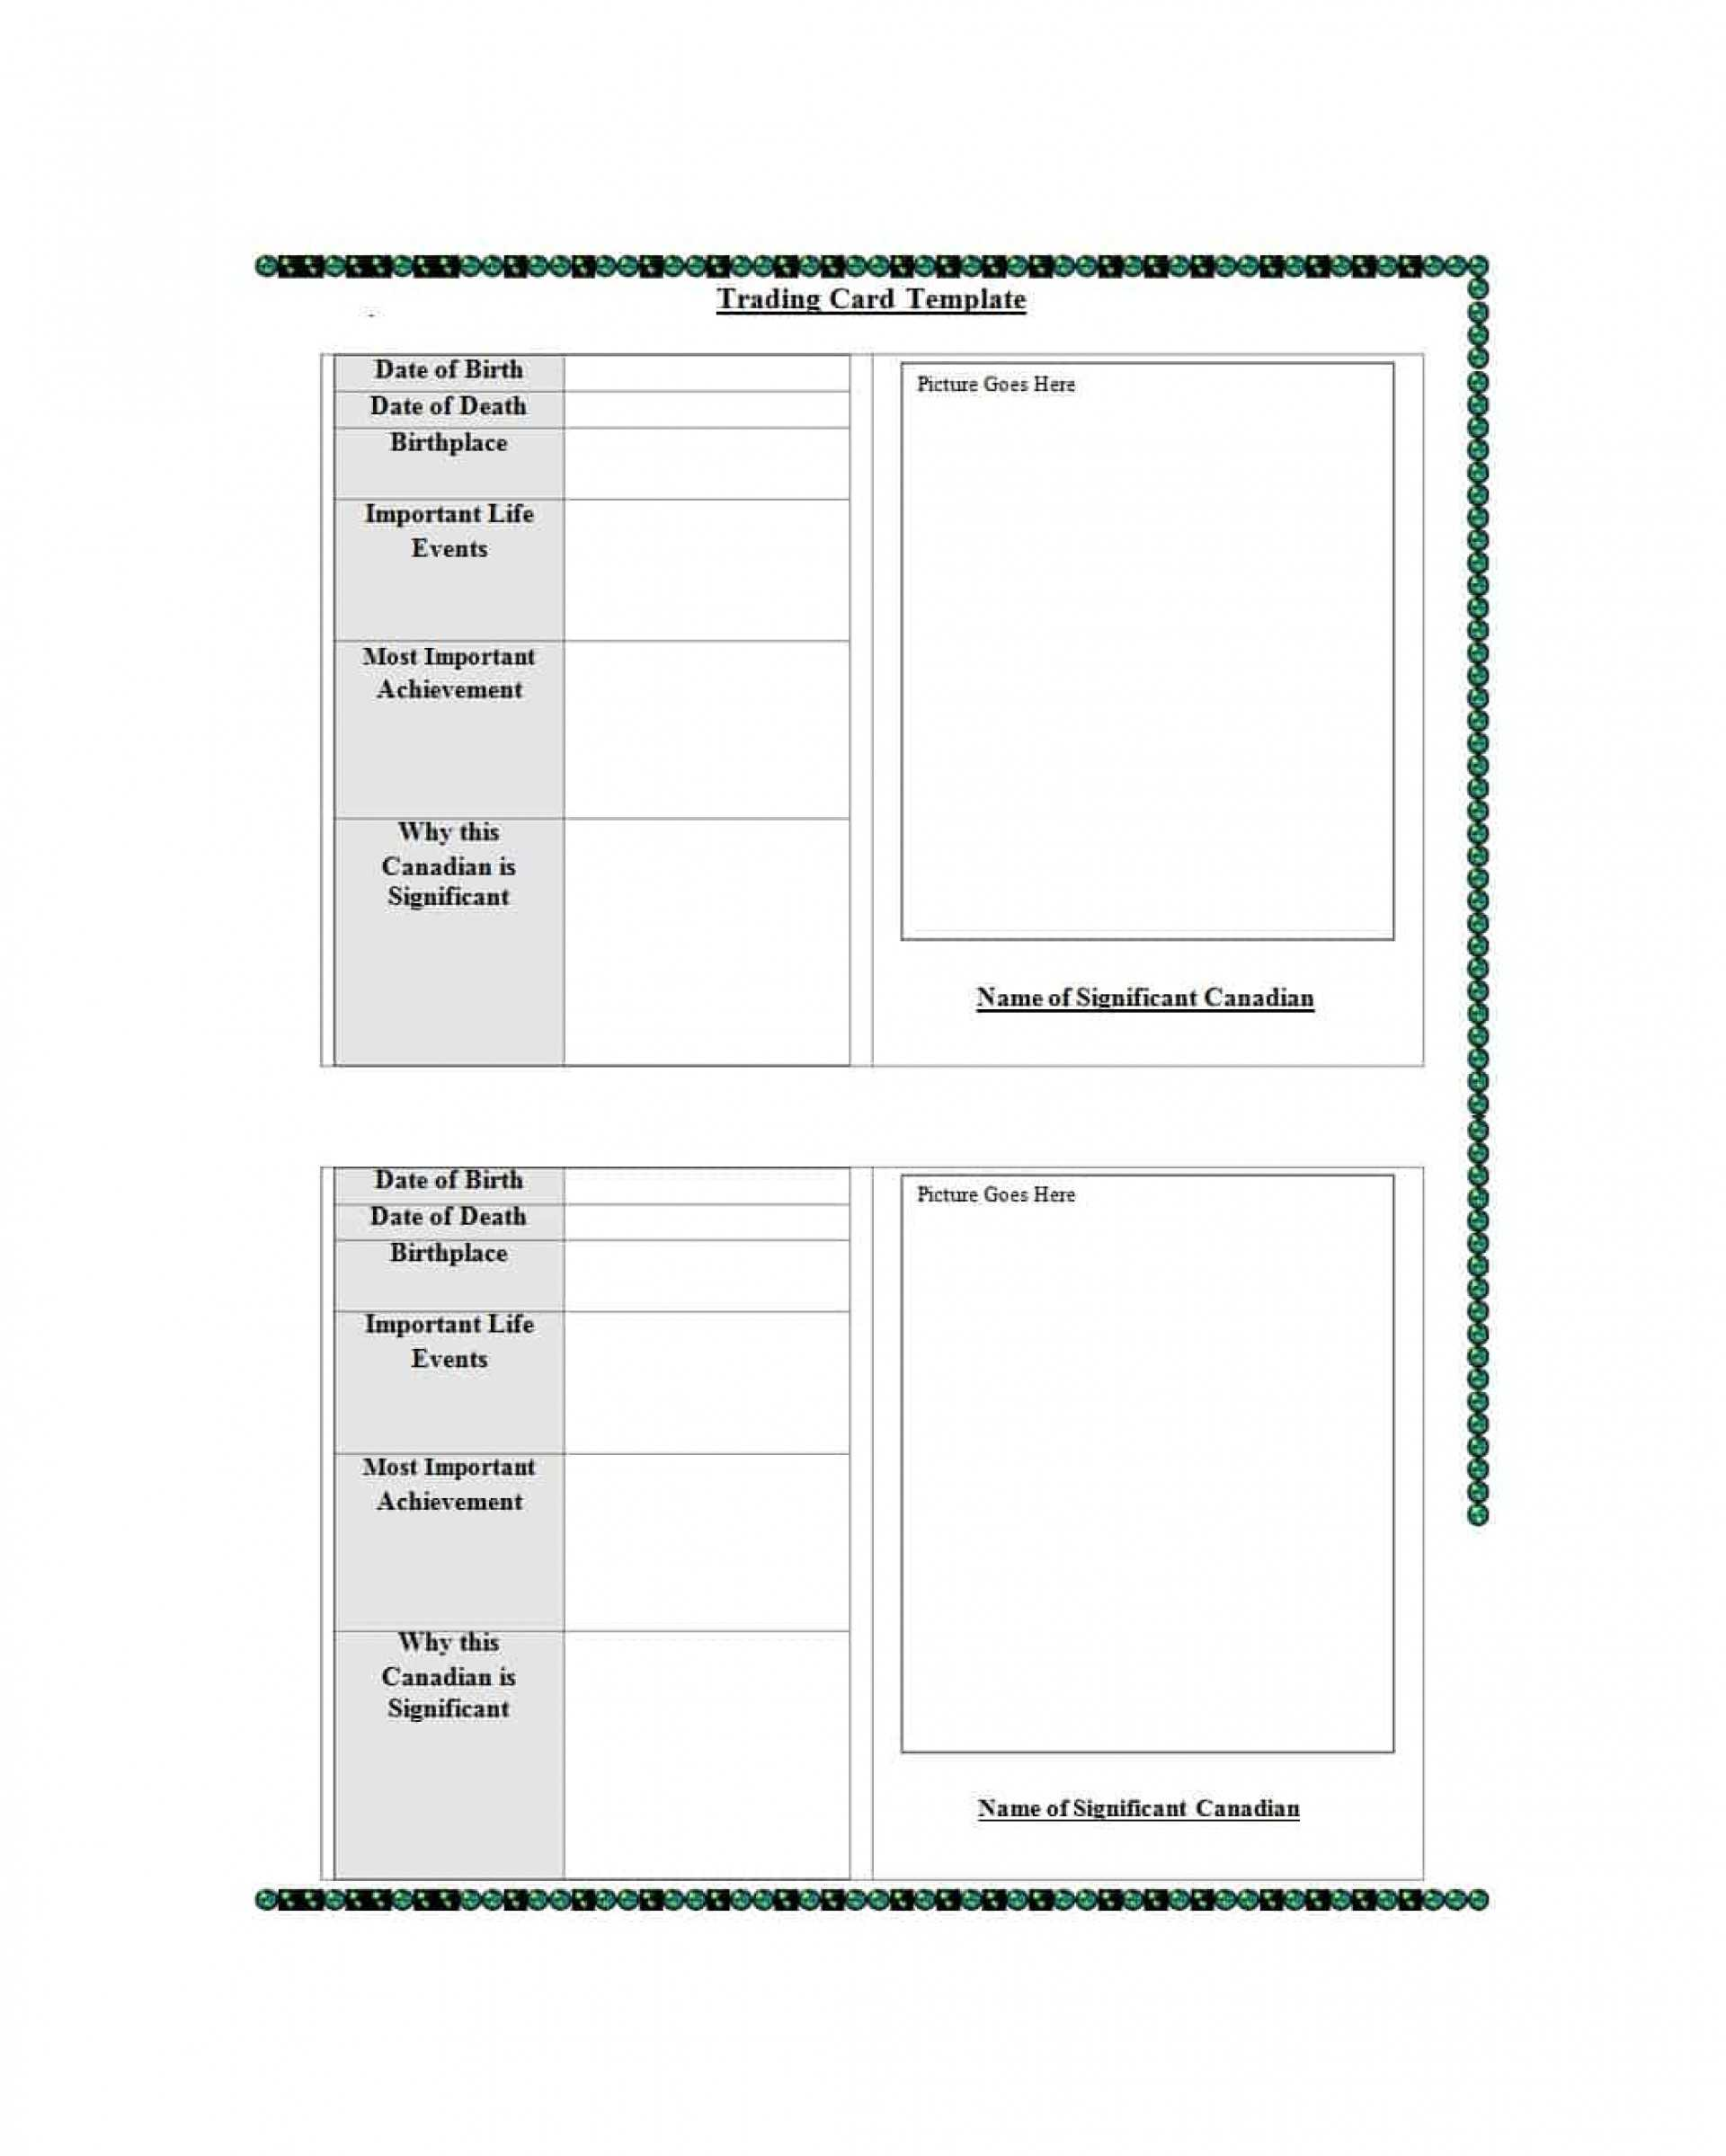 024 Baseball Trading Card Template Free Download Ideas Intended For Trading Cards Templates Free Download